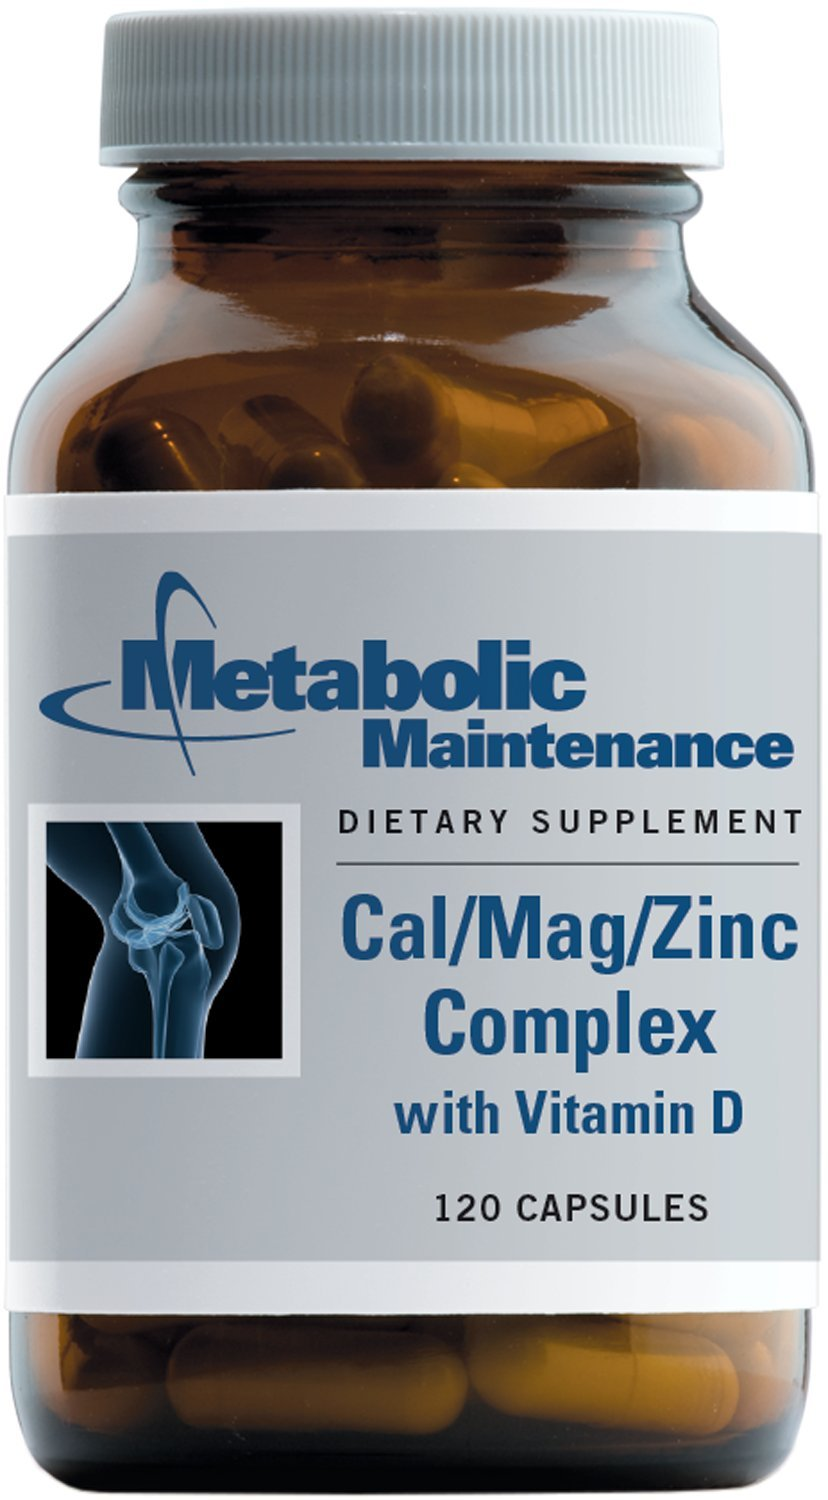 Metabolic Maintenance - Cal/Mag/Zinc Complex with Vitamin D - Higher Absorption for Bone Support, 120 Capsules